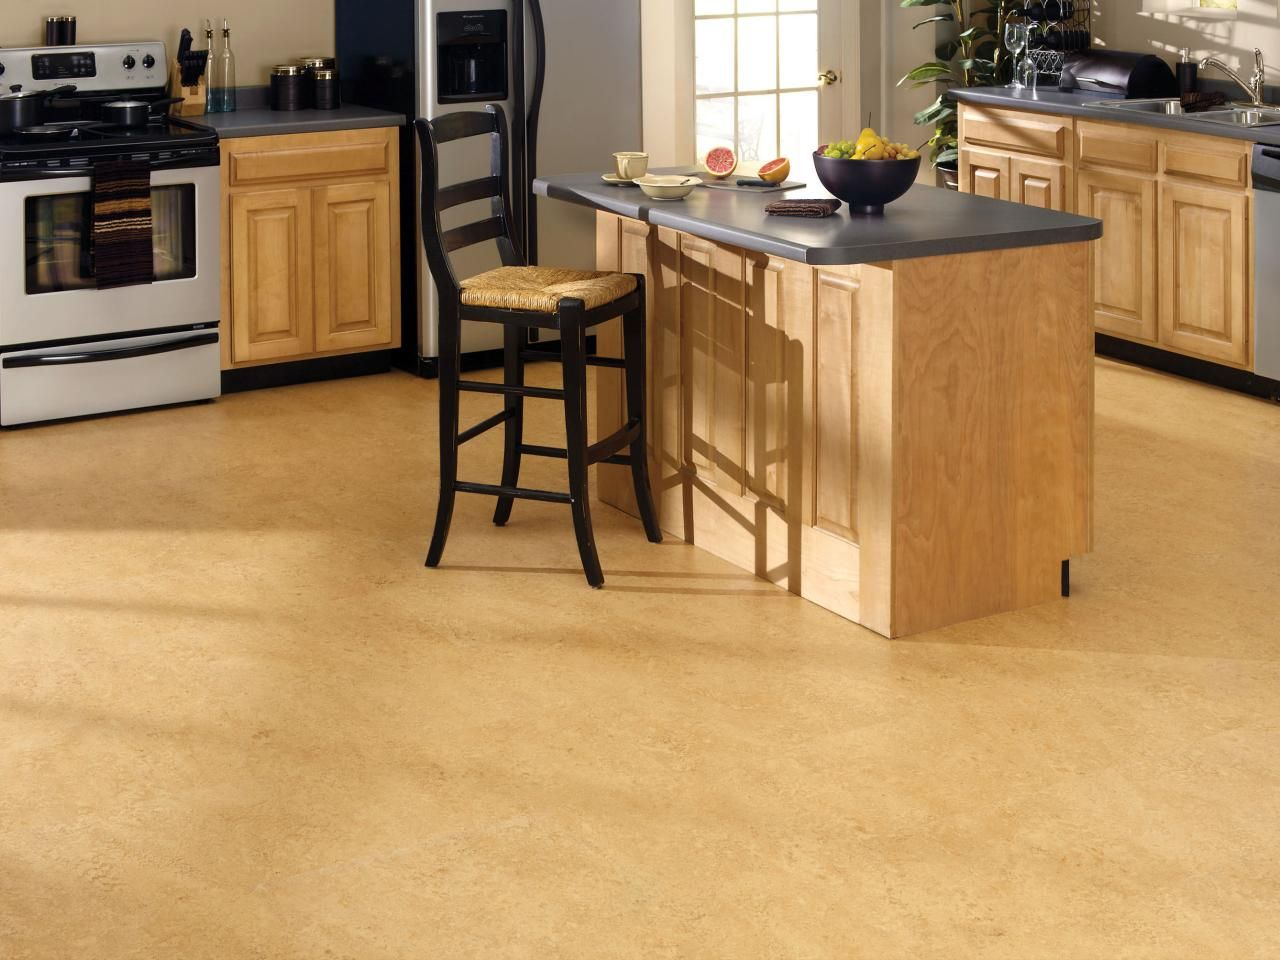 flooring trends kitchen vinyl flooring ideas and diy network on kitchen remodel vinyl flooring id=70244